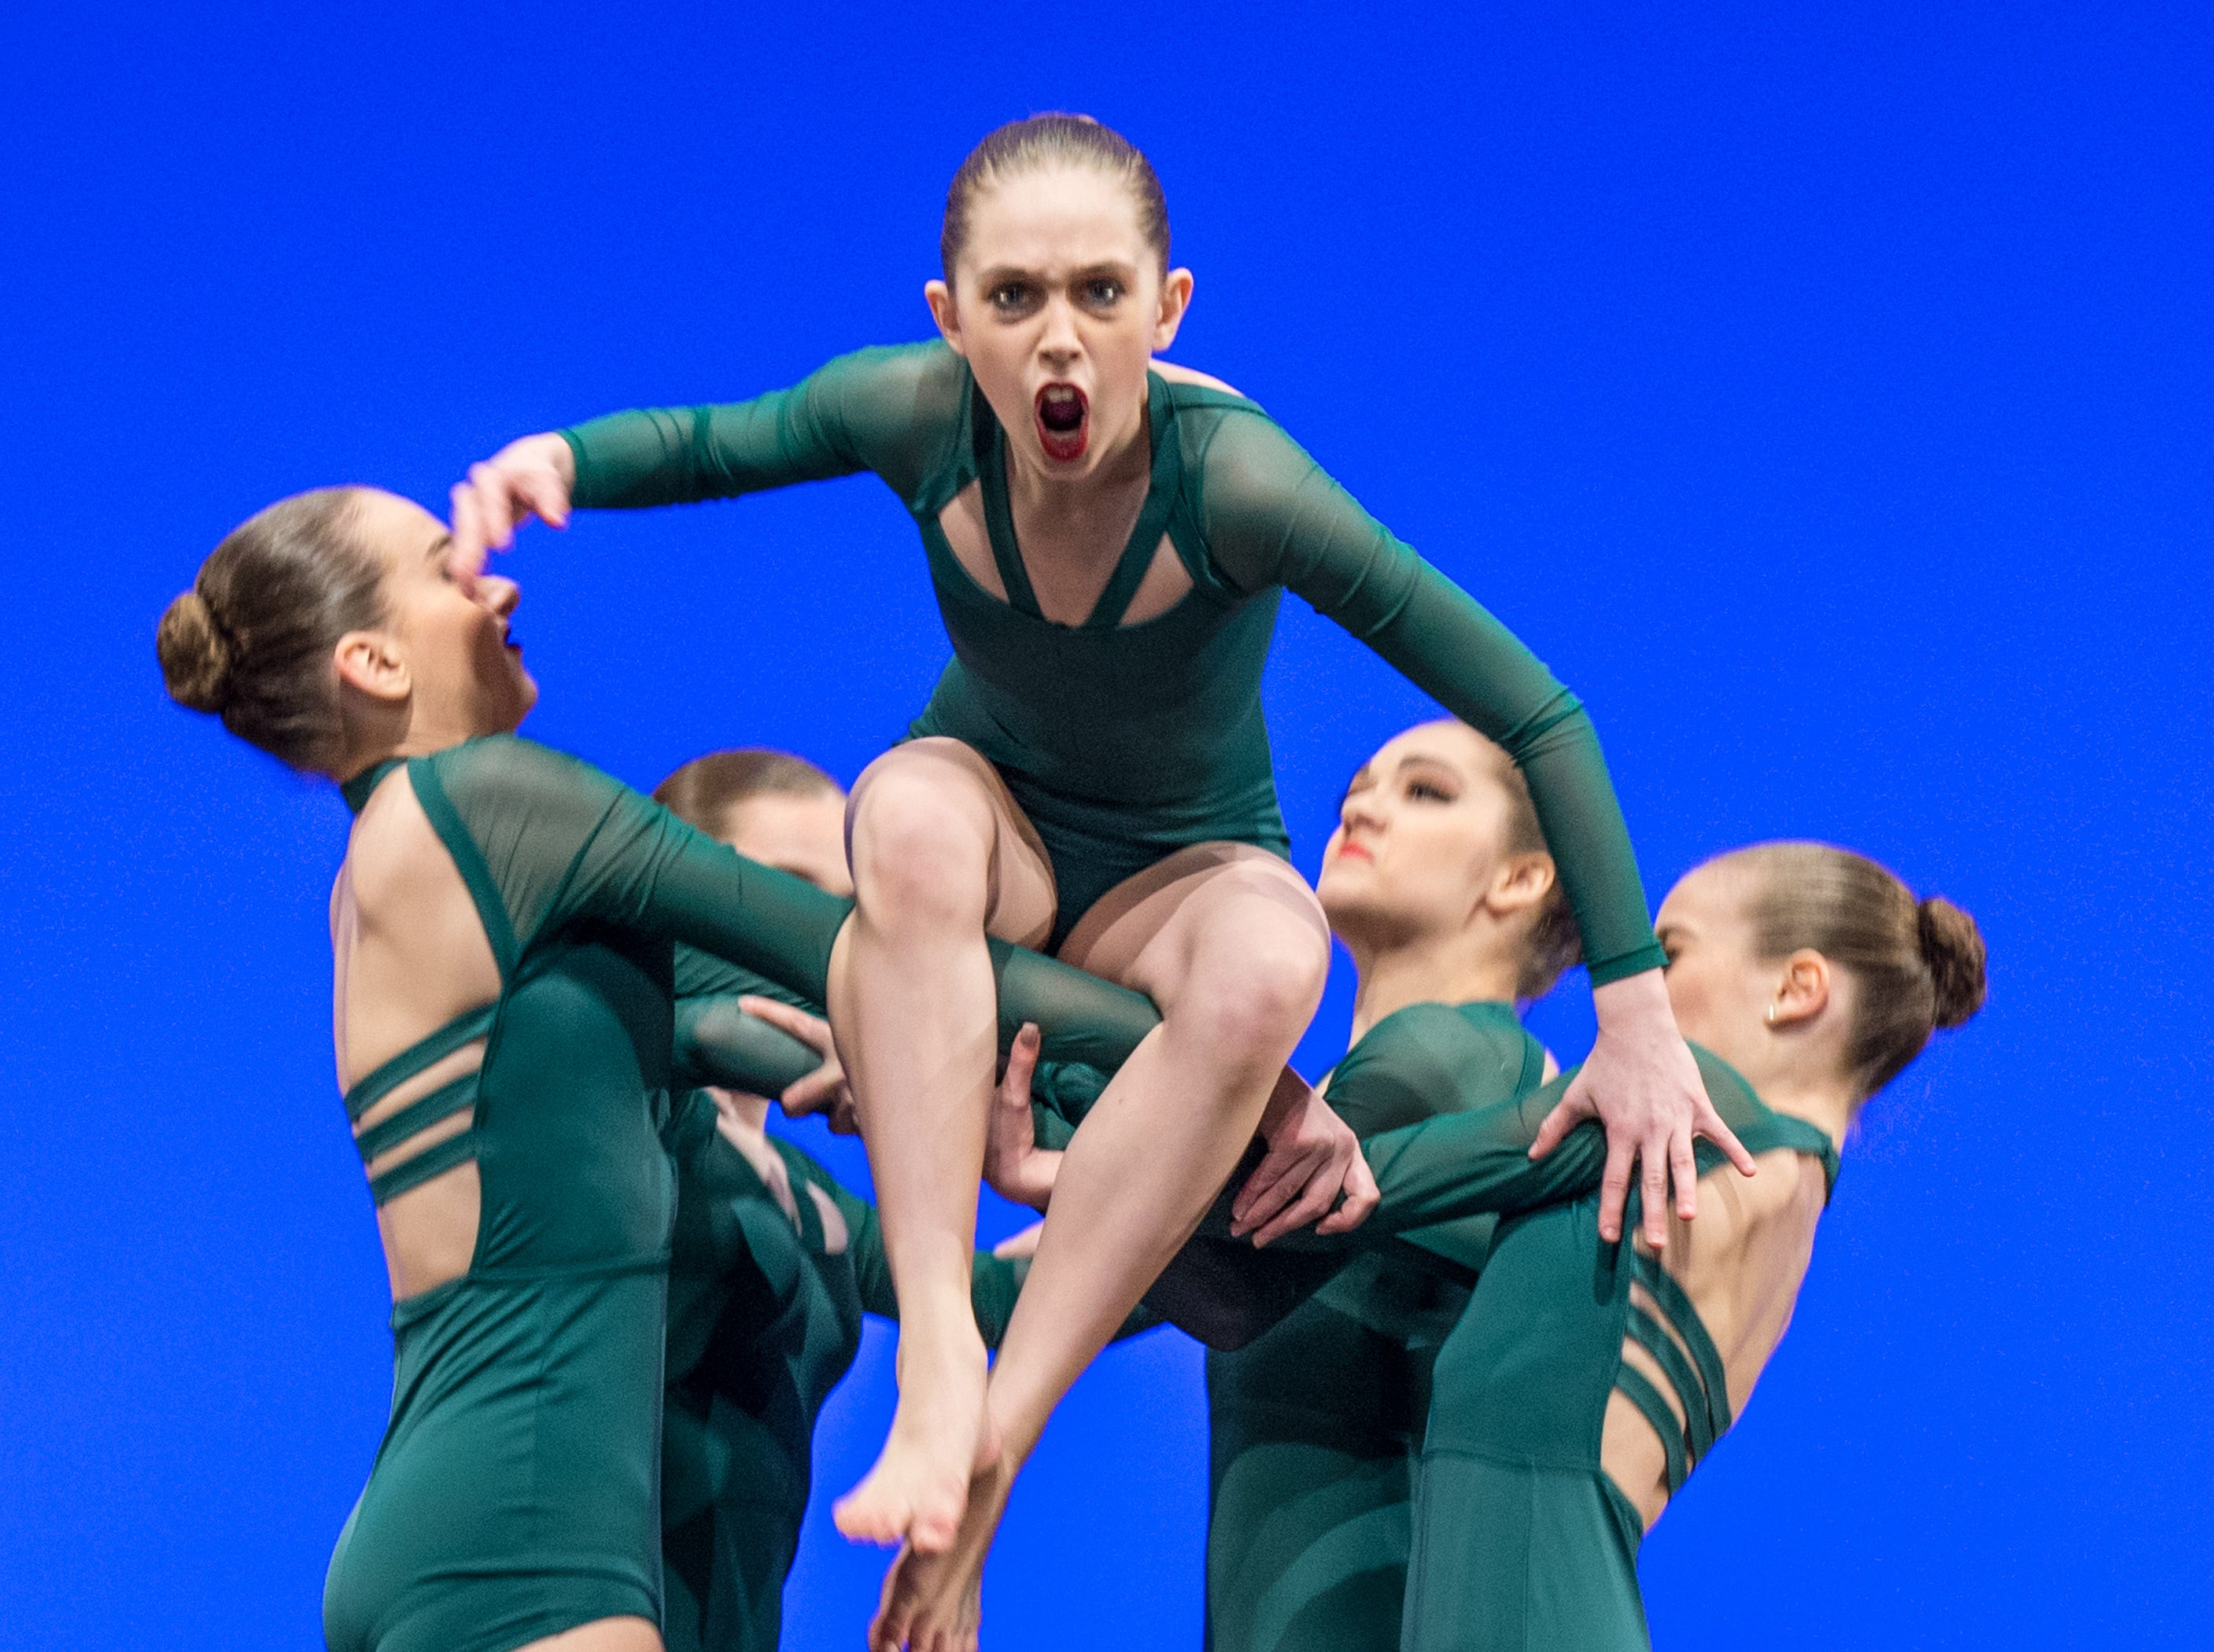 Split performs during the Youth America Grand Prix ballet regional semi-finals held at The Center for the Performing Arts in Carmel Indiana on Sunday March 18, 2018. Split members: Kera Fernstron, Angela Menchaca, Micaela Debby, Morgan Mohler, Rachel Tobler.